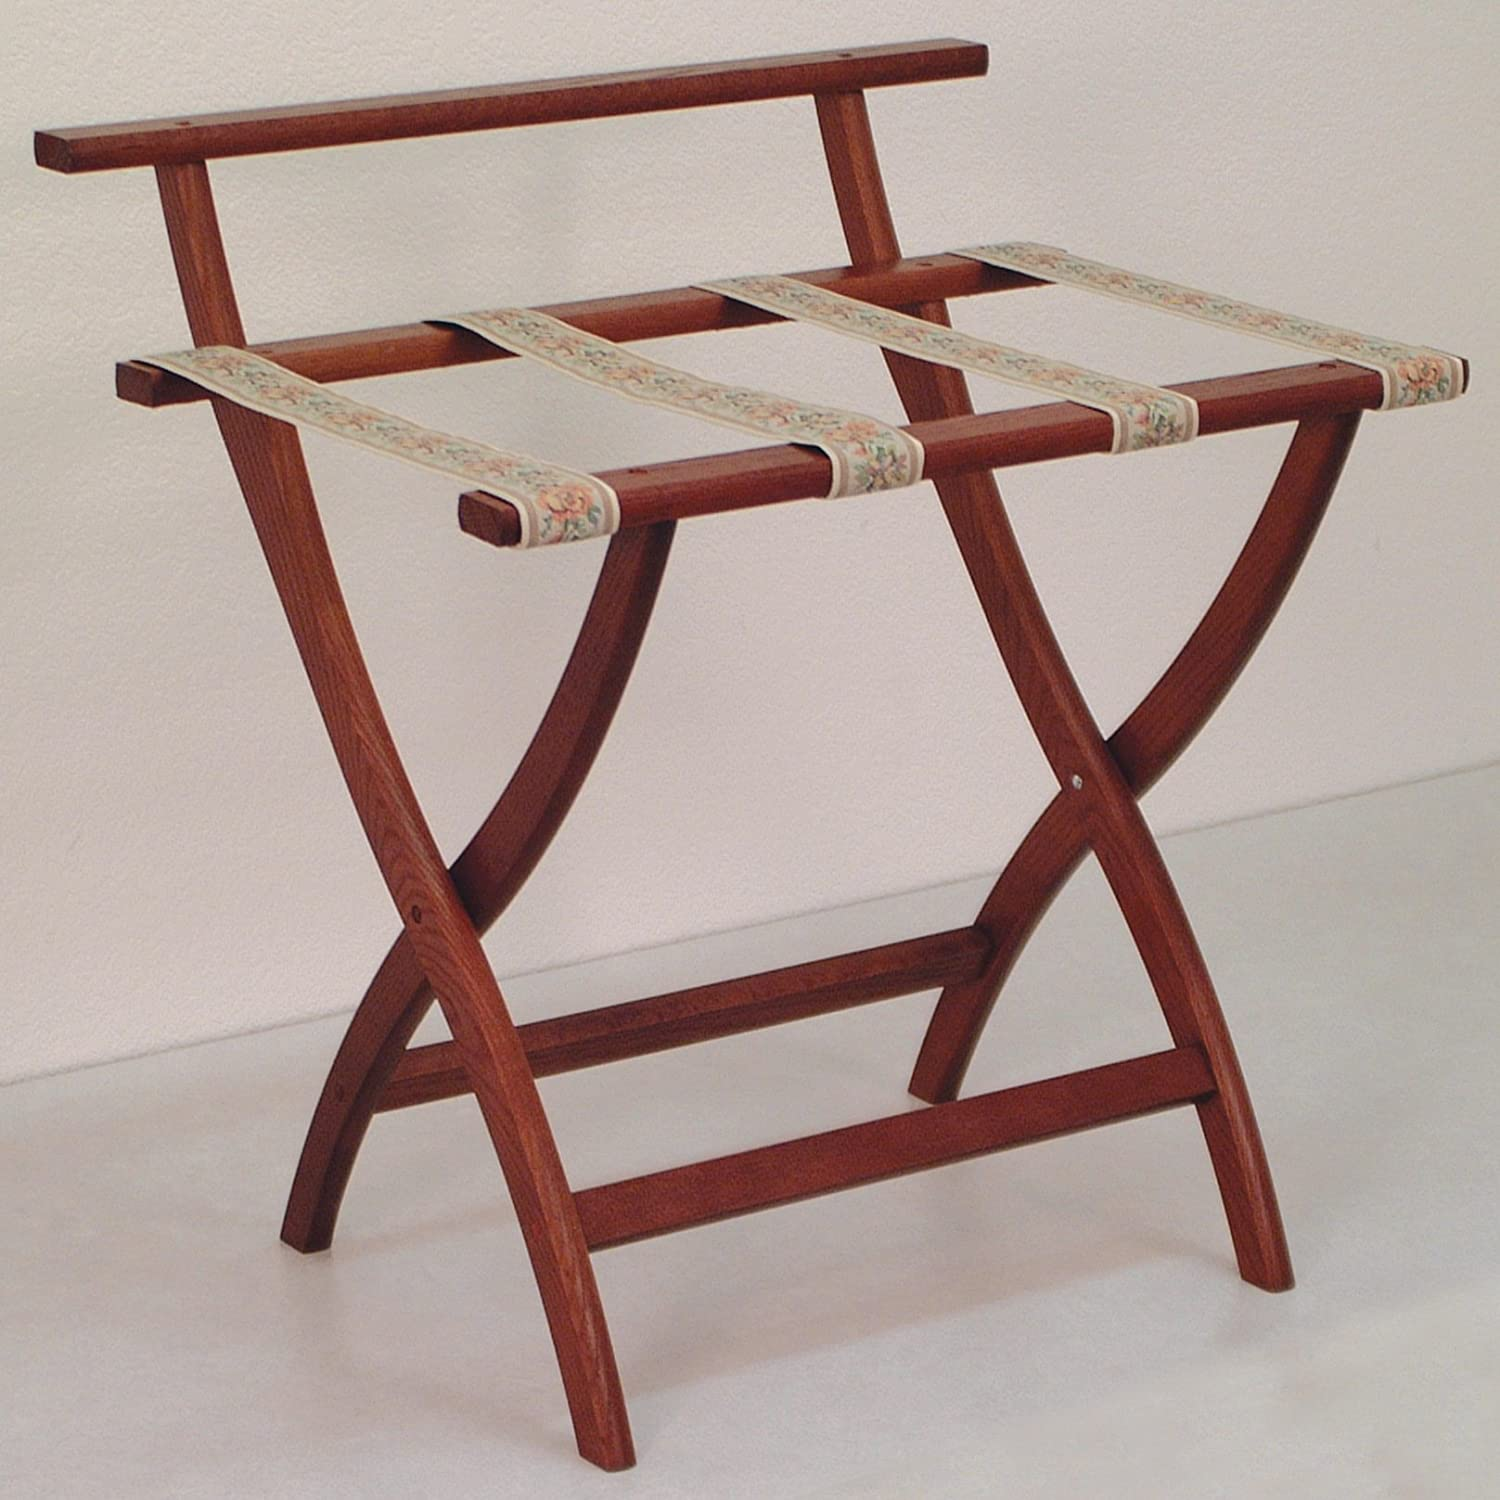 Wooden Mallet WallSaver Luggage Rack,Tapestry Straps, Mahogany